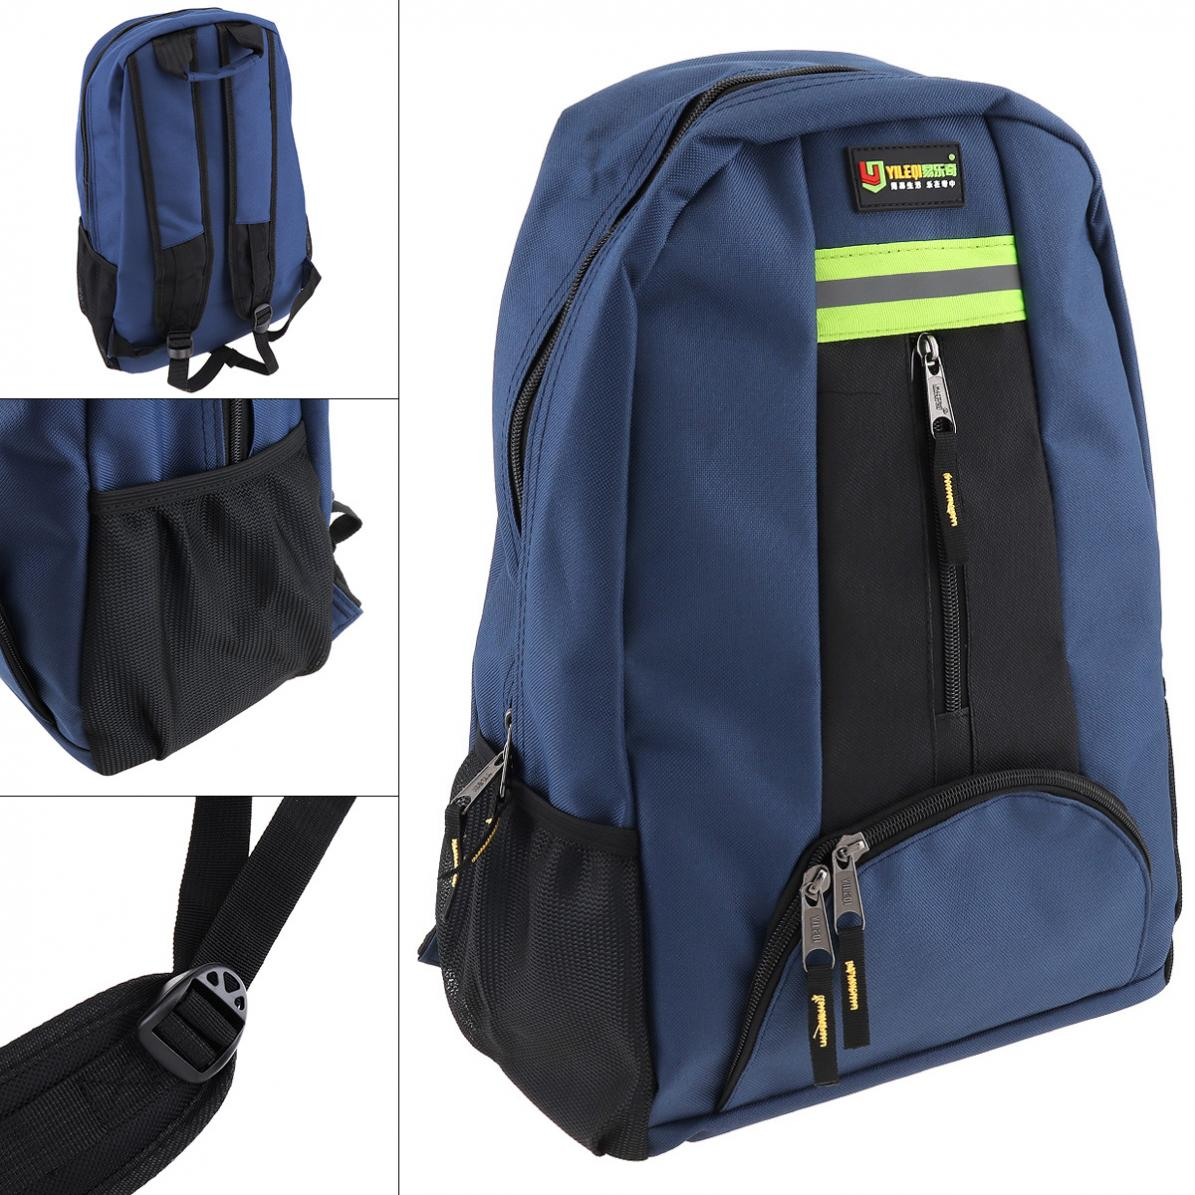 Multifunctional Oxford Cloth Waterproof Double-shoulder Backpack Tool Bag With 12 Pockets And Safety Strip For Maintenance Tools